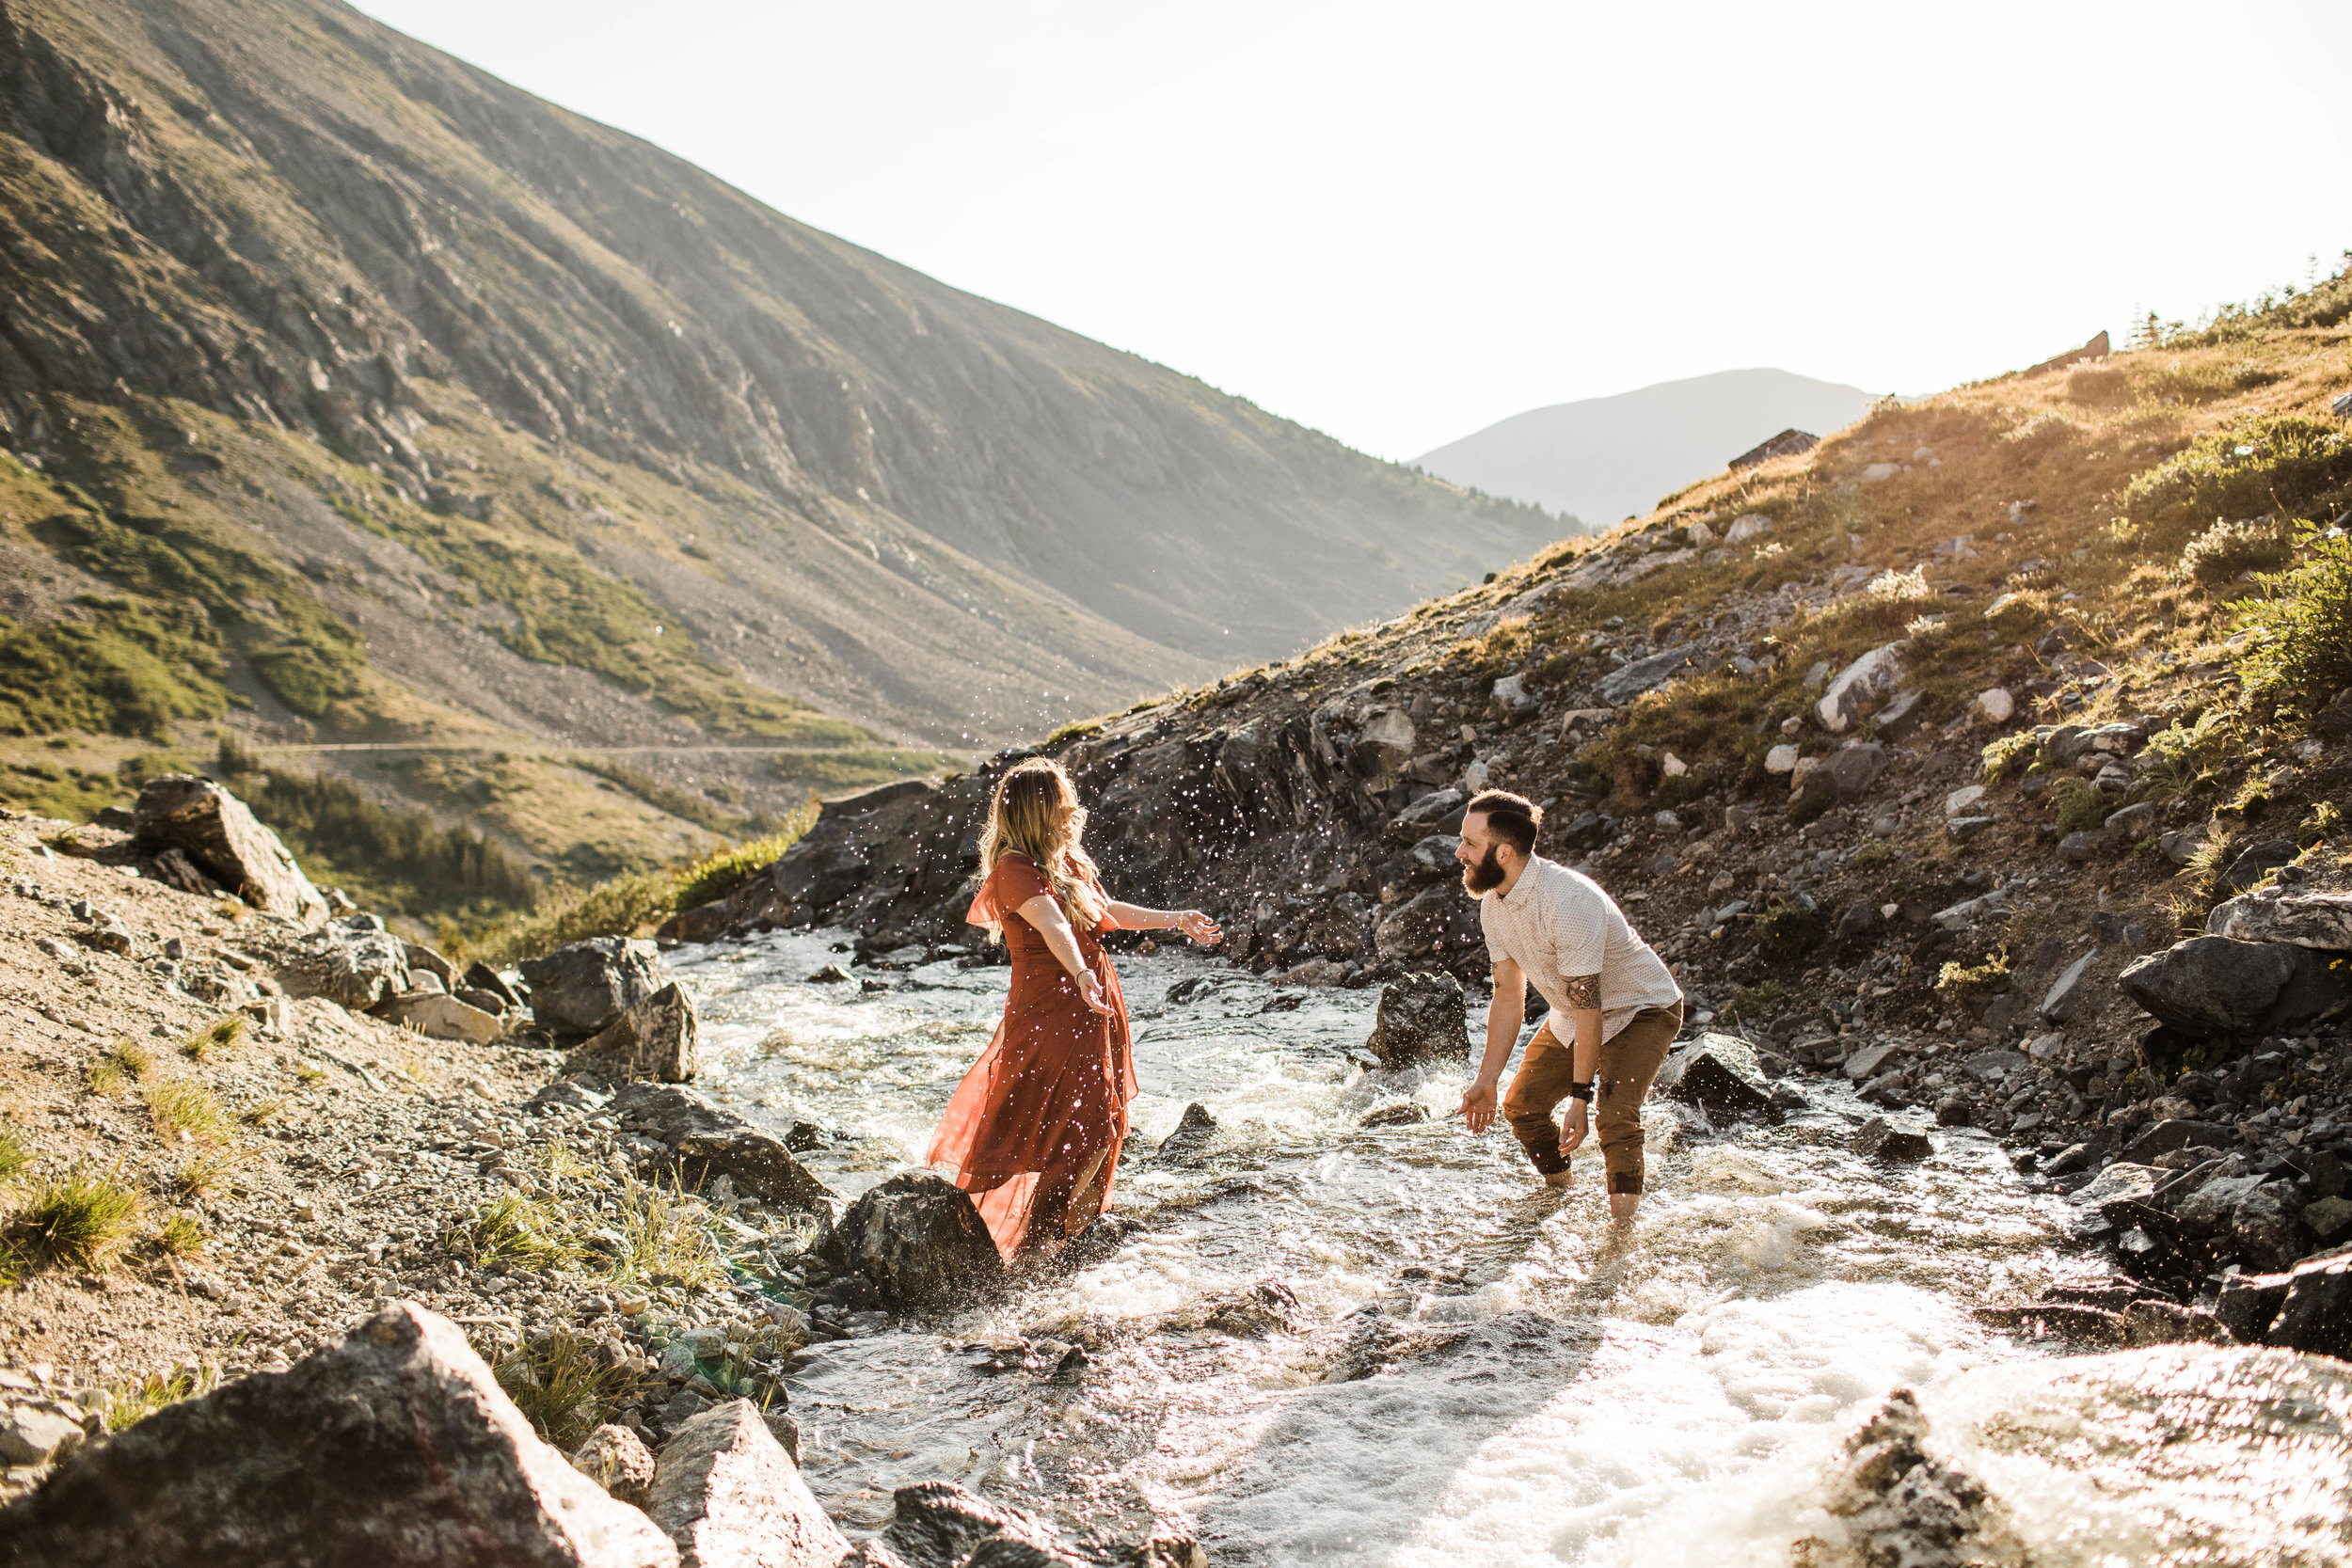 eloping couple splashing around in a creek during their adventurous engagement photos in the mountains of Colorado | Breckenridge adventure wedding photographers